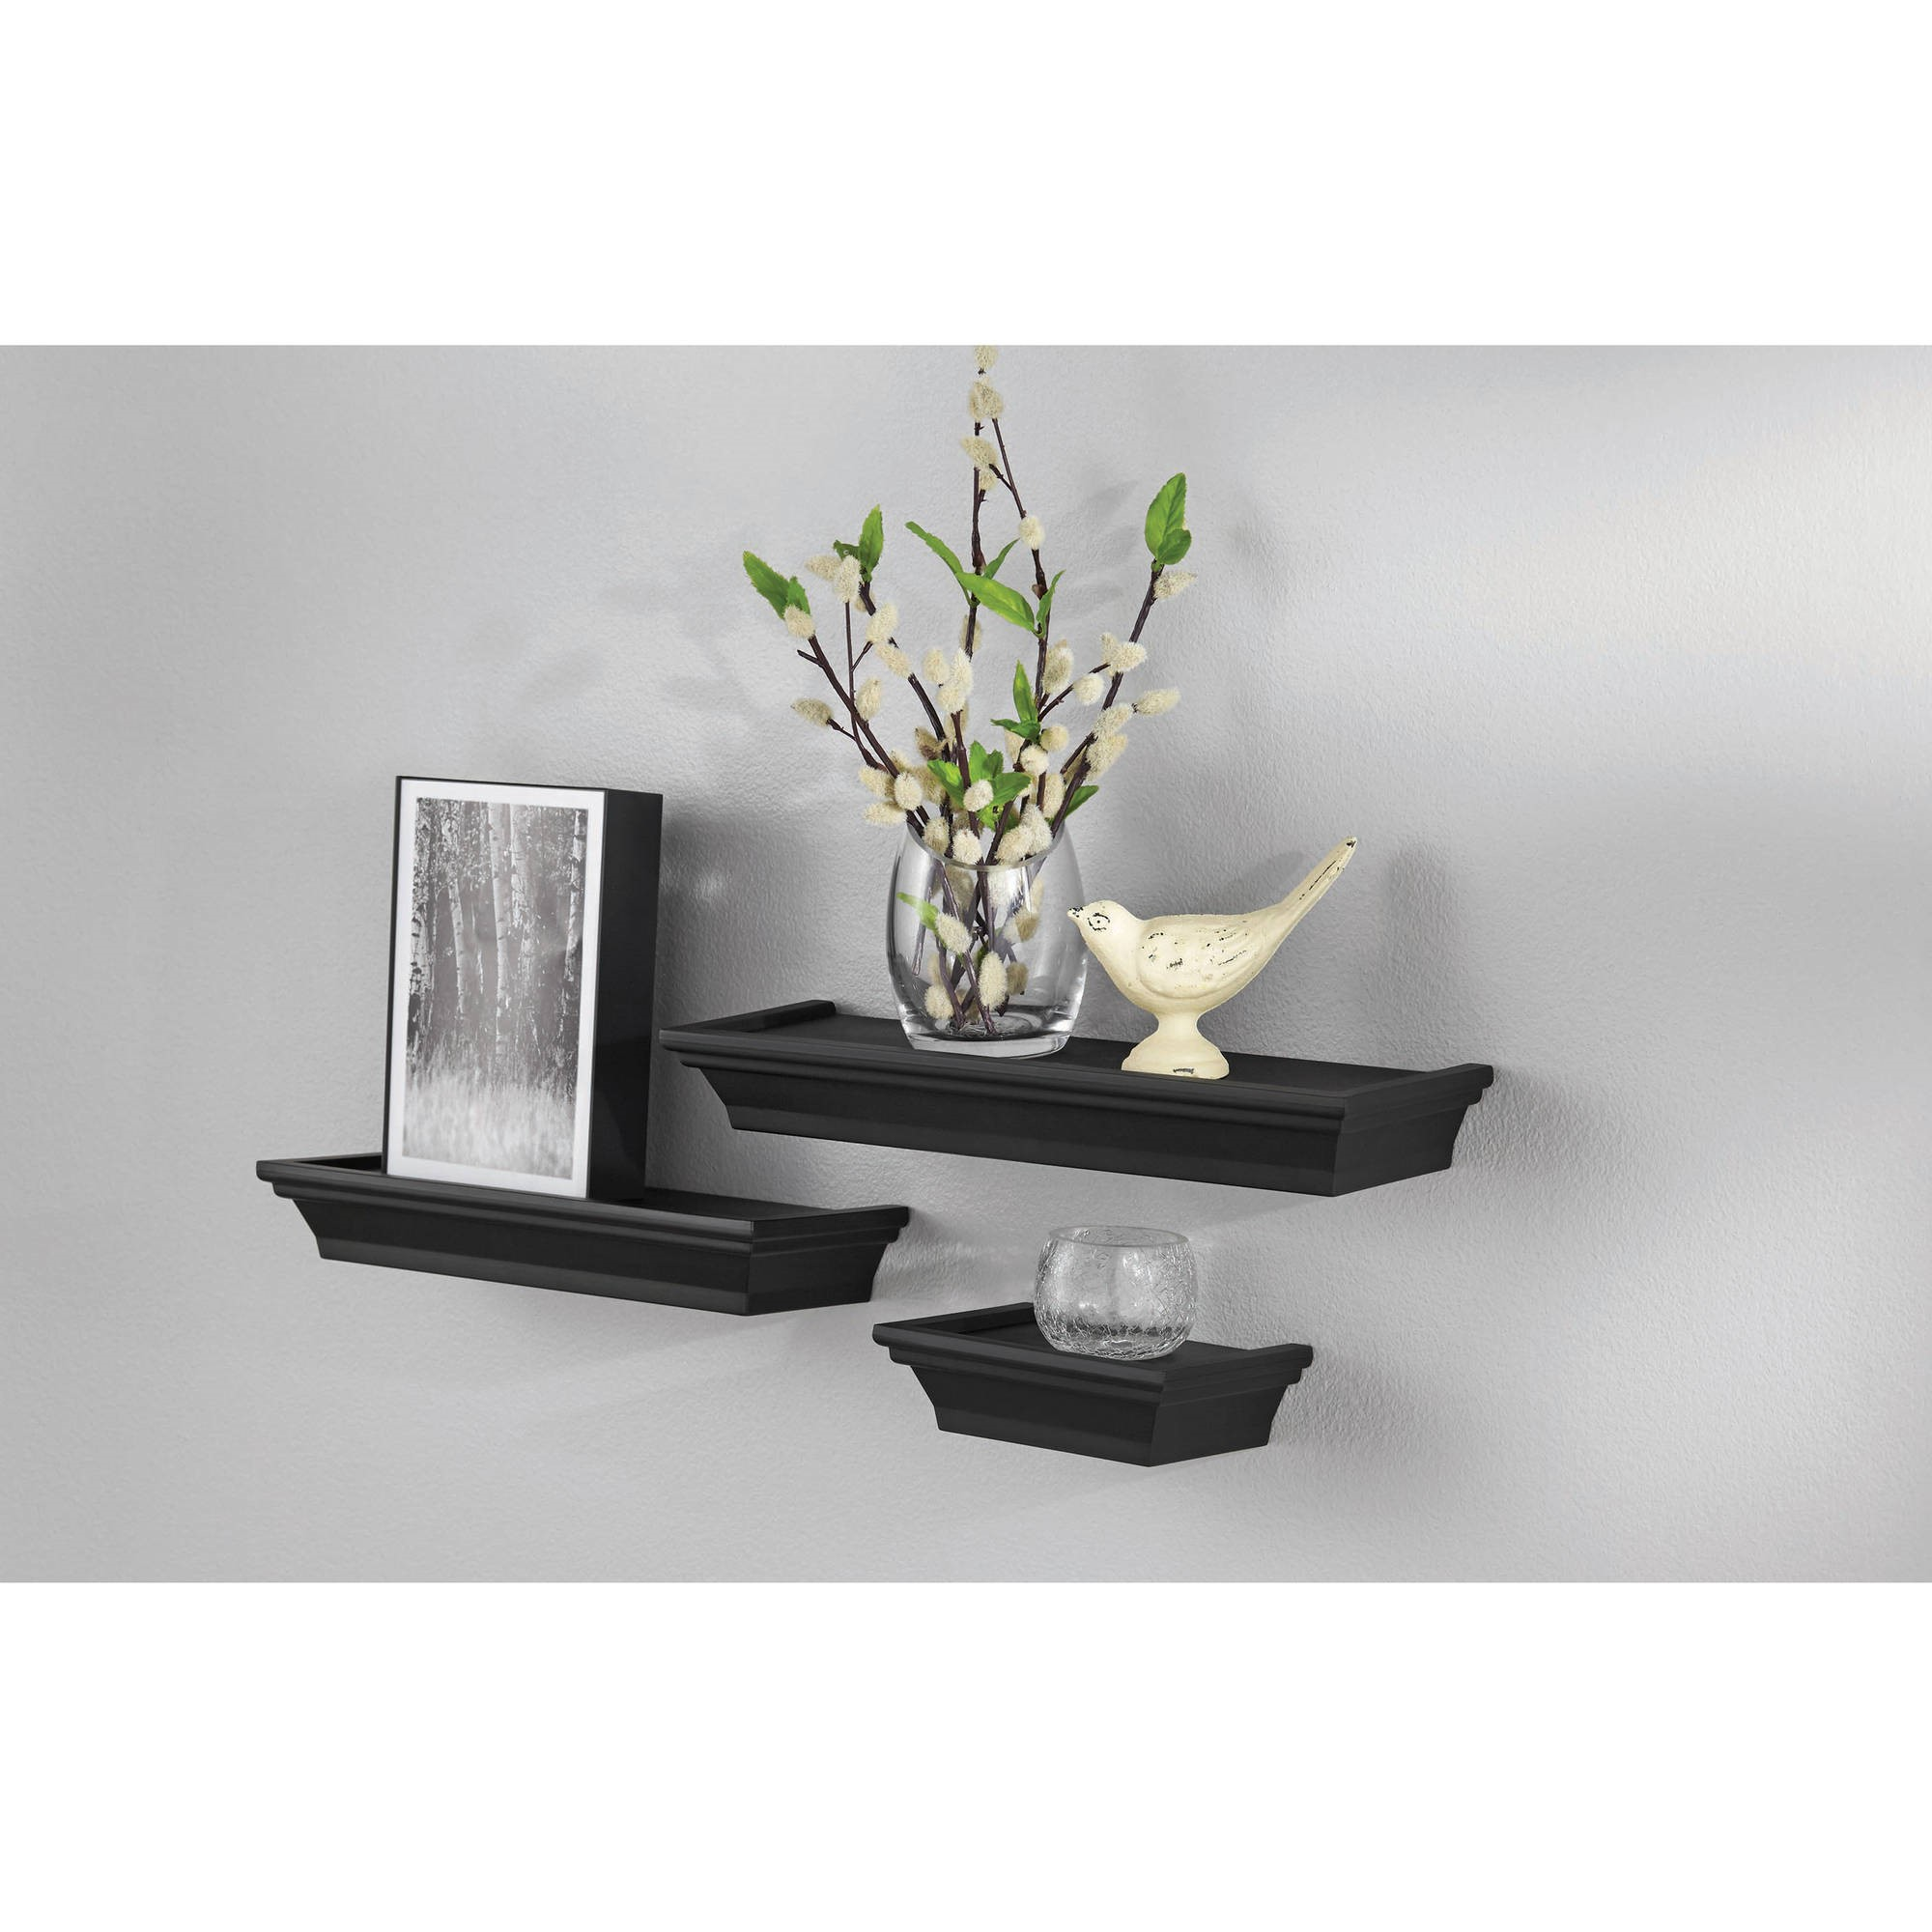 Mainstays 3-Piece Decorative Shelf Set, Black - Walmart.com